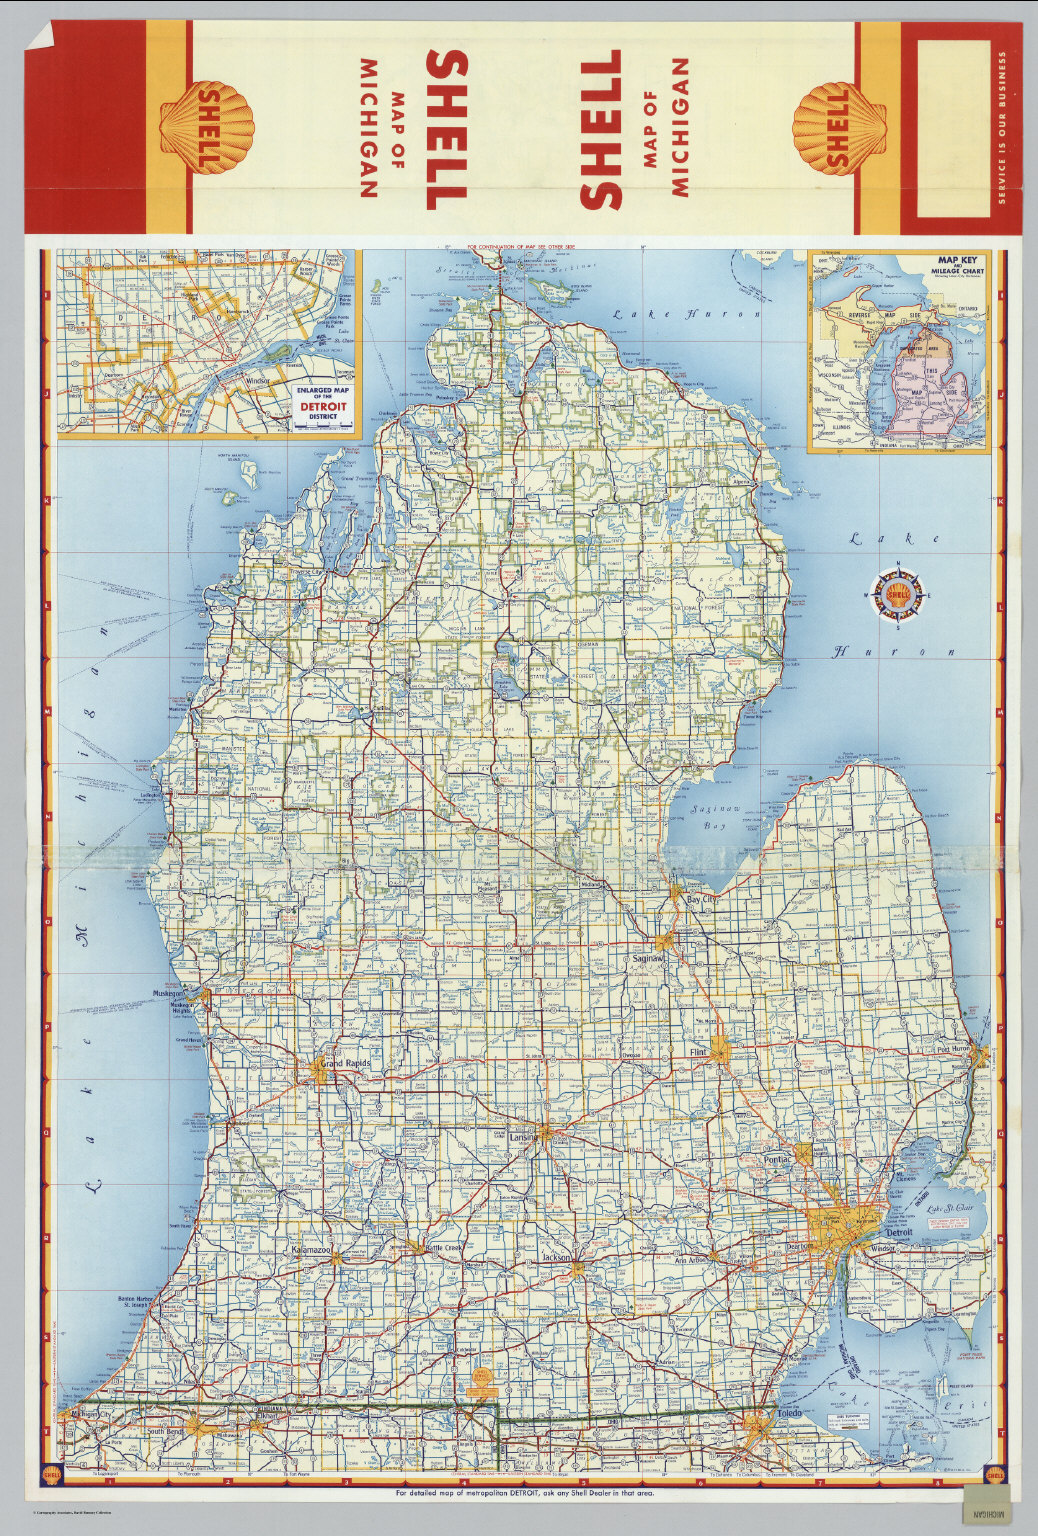 Shell Highway Map Of Michigan Southern Portion David Rumsey - Road map of michigan